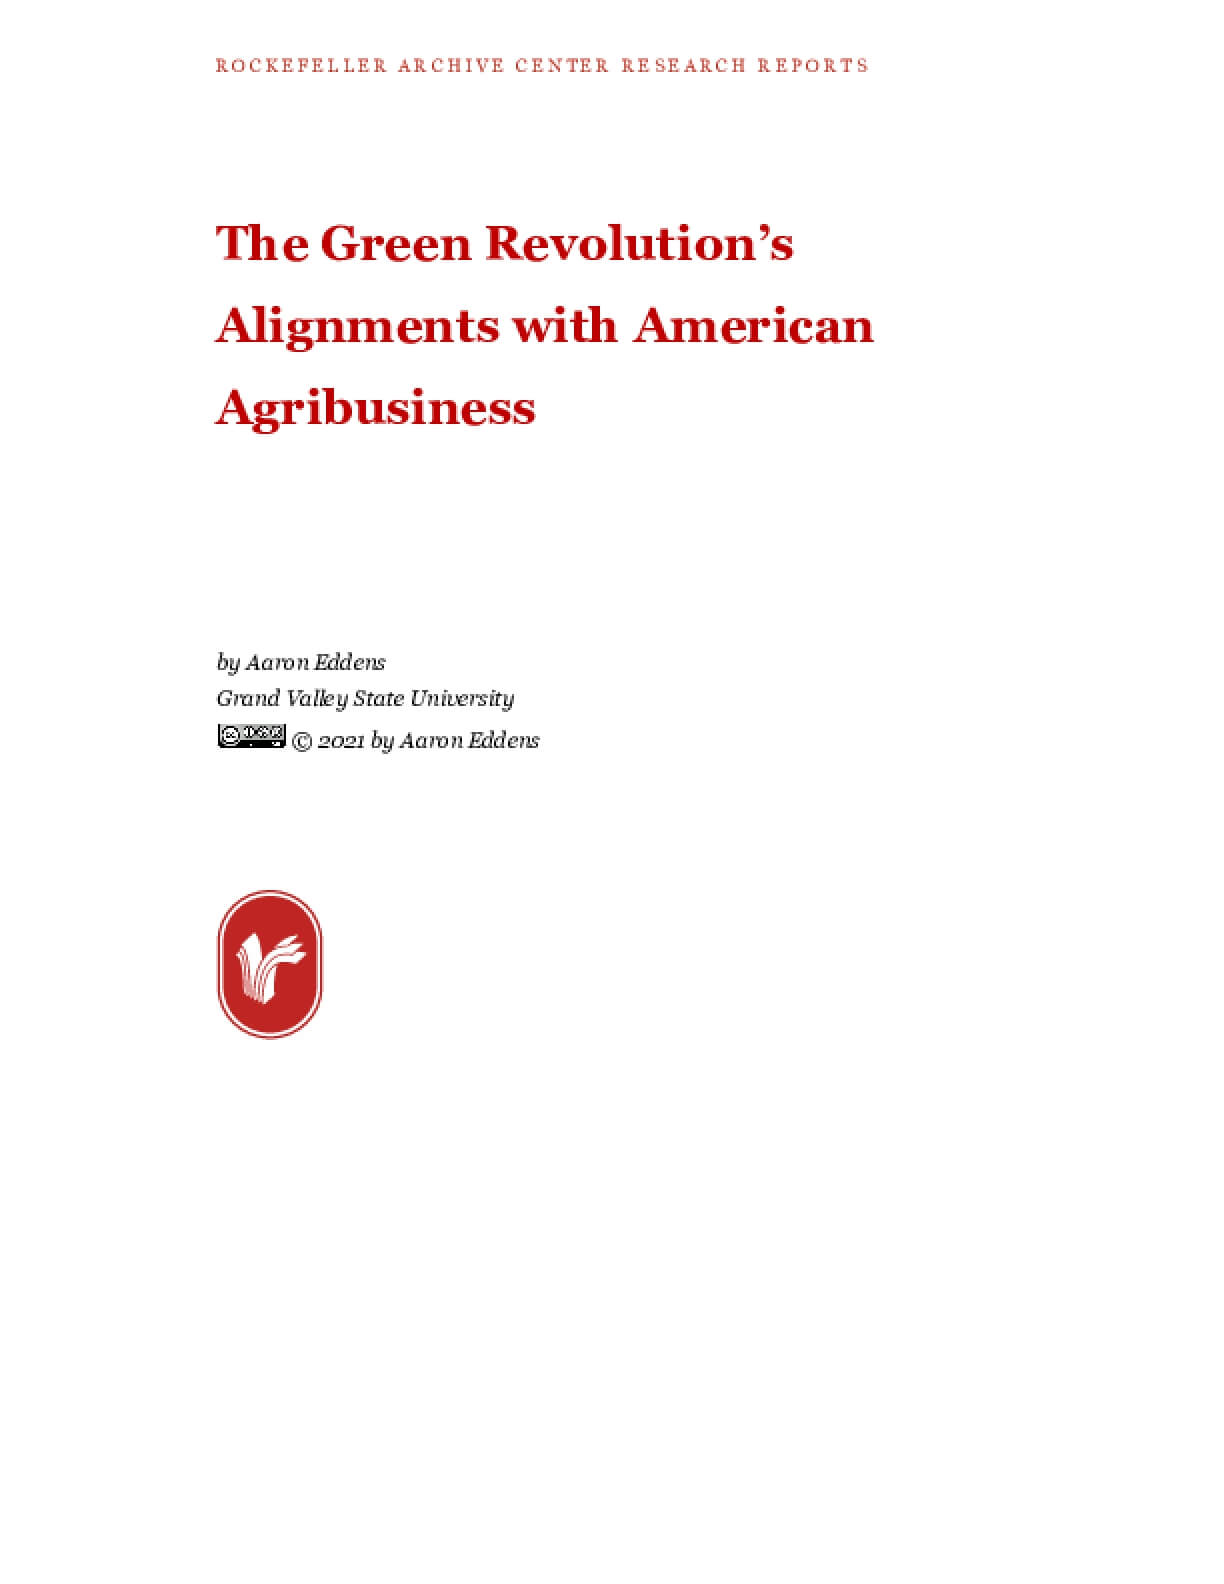 The Green Revolution's Alignments with American Agribusiness